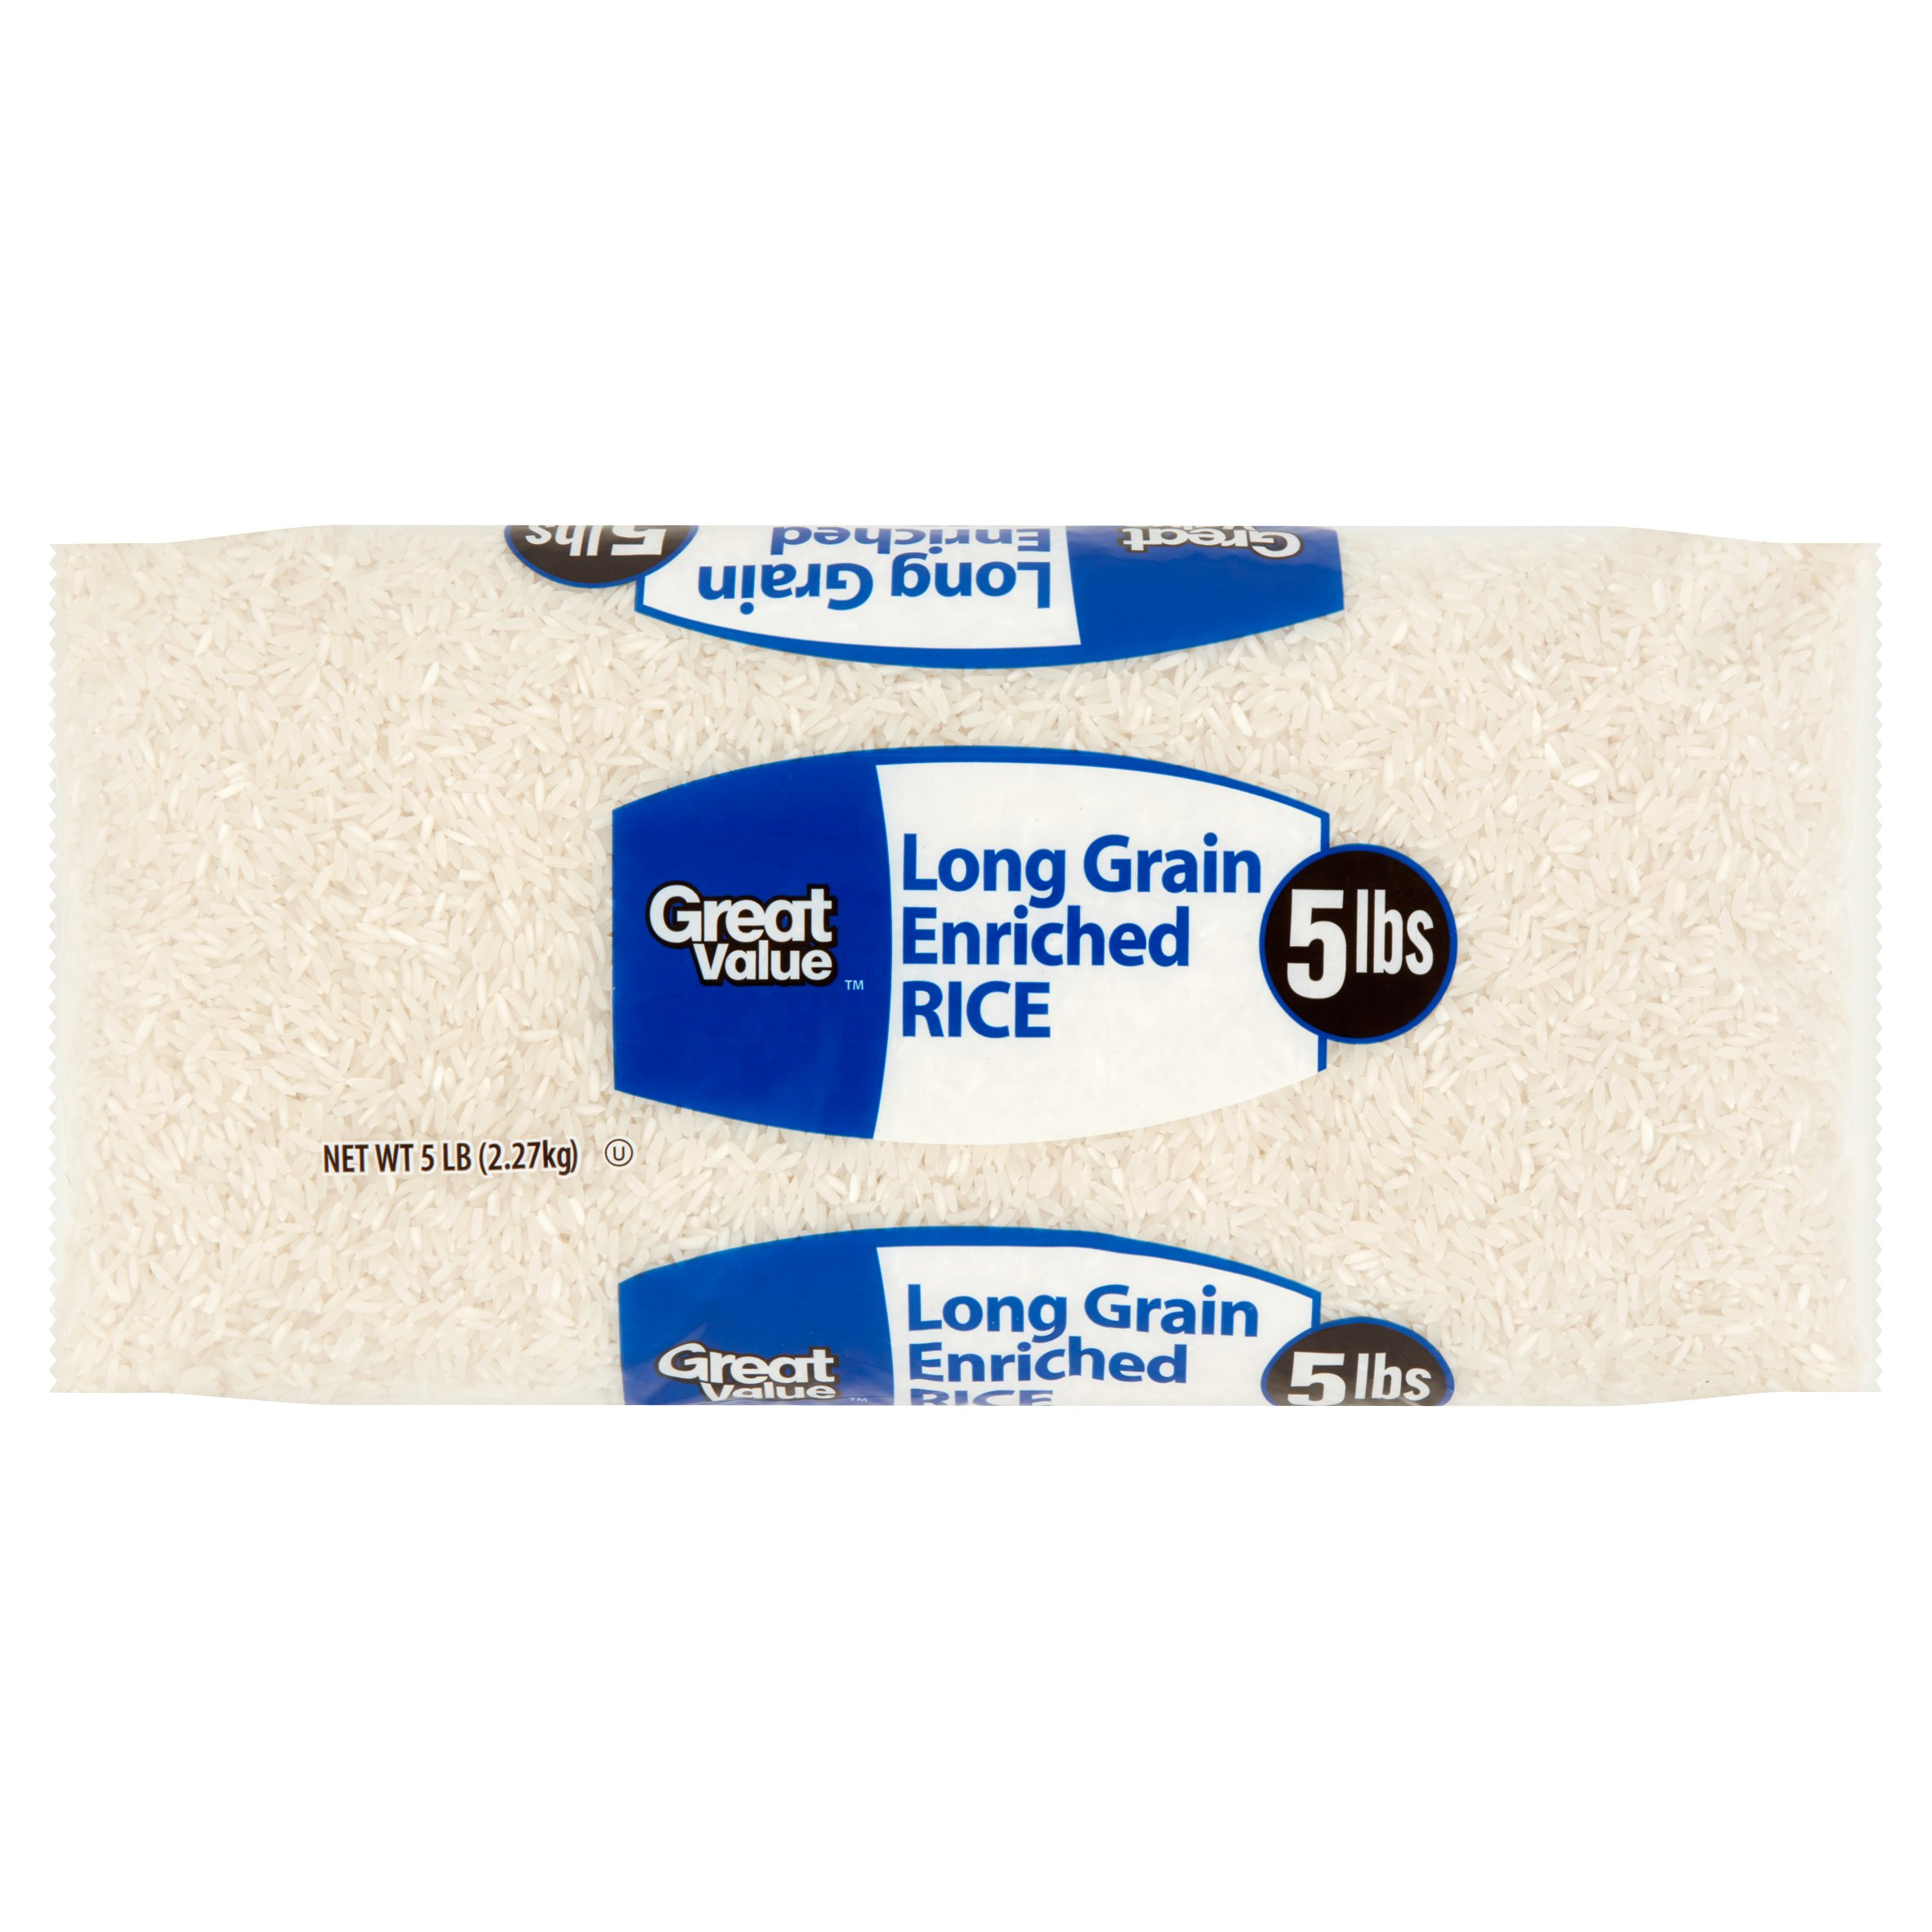 Great Value Long Grain Enriched Rice, 5 lbs